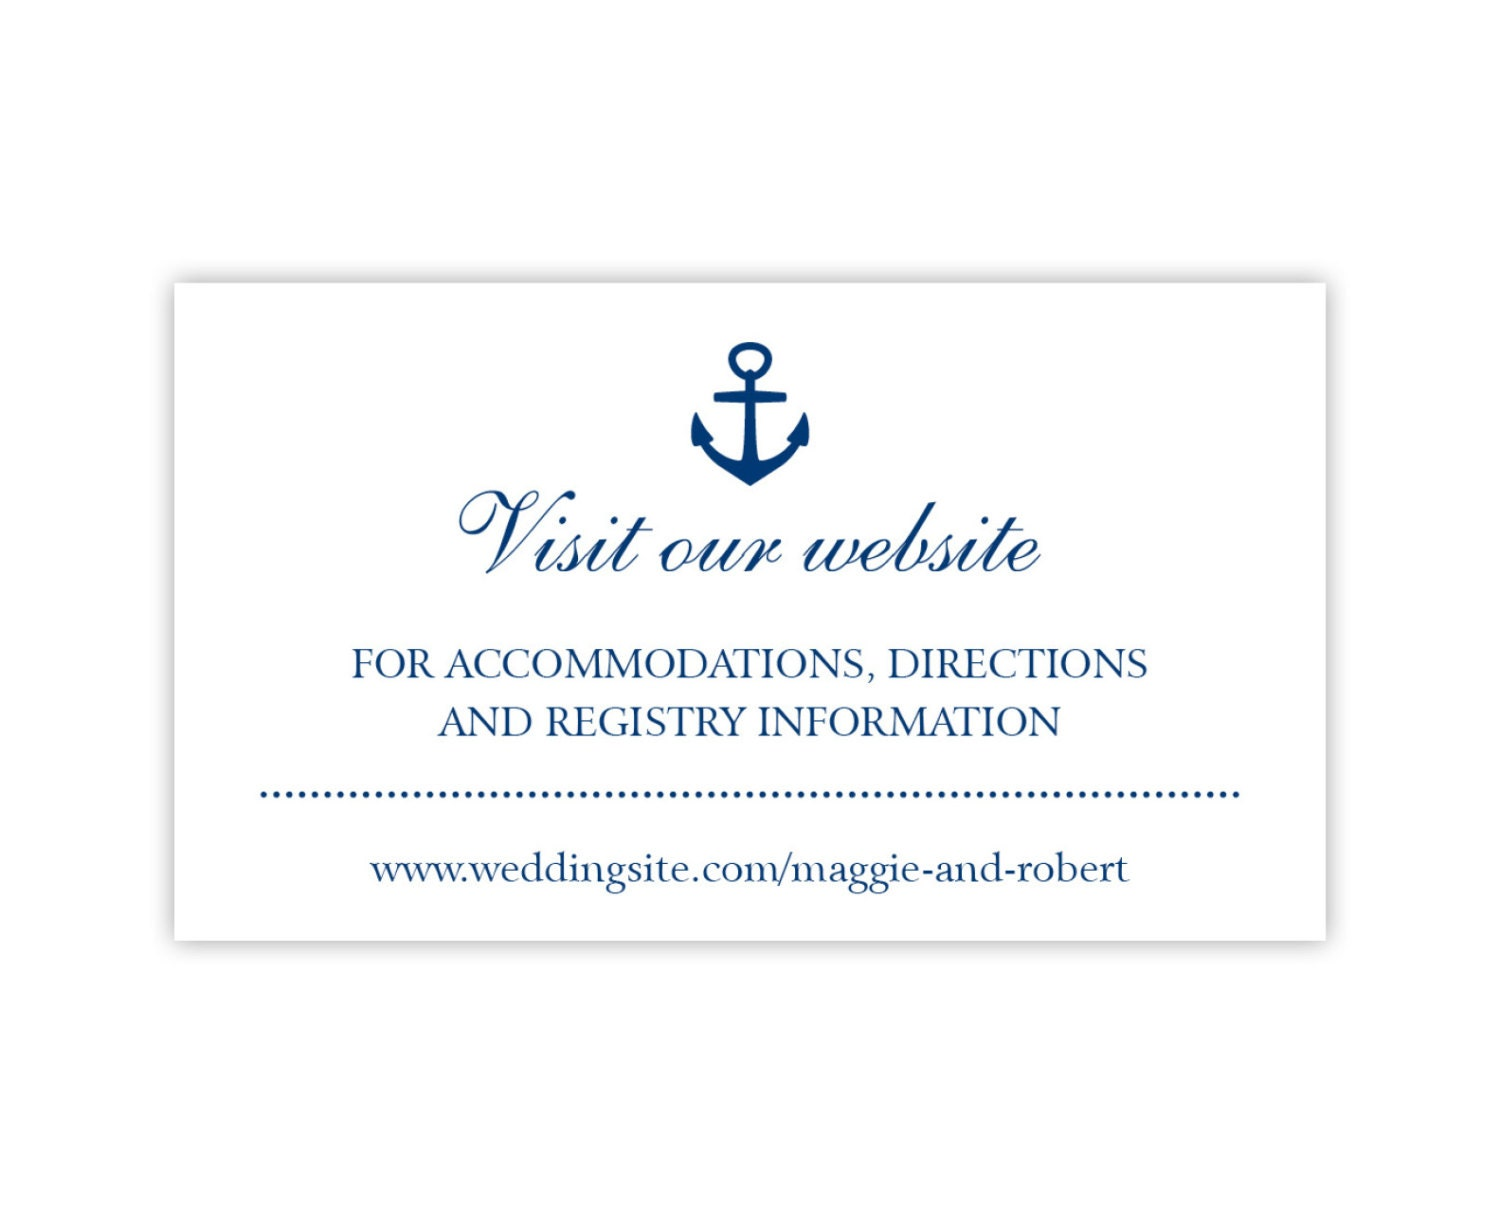 wedding website cards enclosure cards wedding hashtag cards or gift registry cards printed white with navy anchor 20 pieces per order